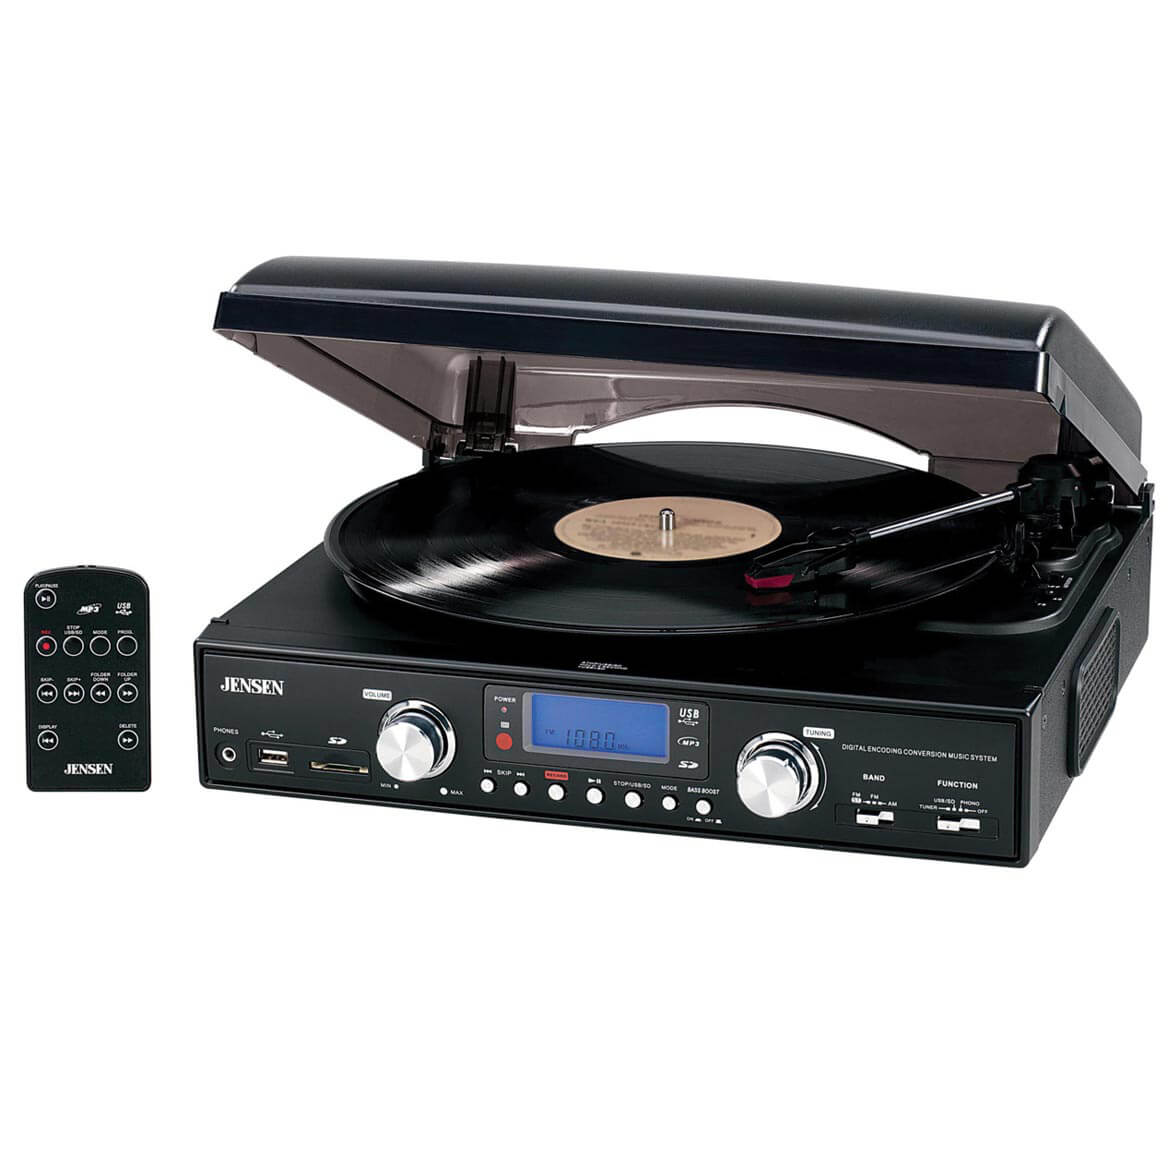 Jensen® 3 Speed Turntable with AM/FM Radio & MP3 Encoding